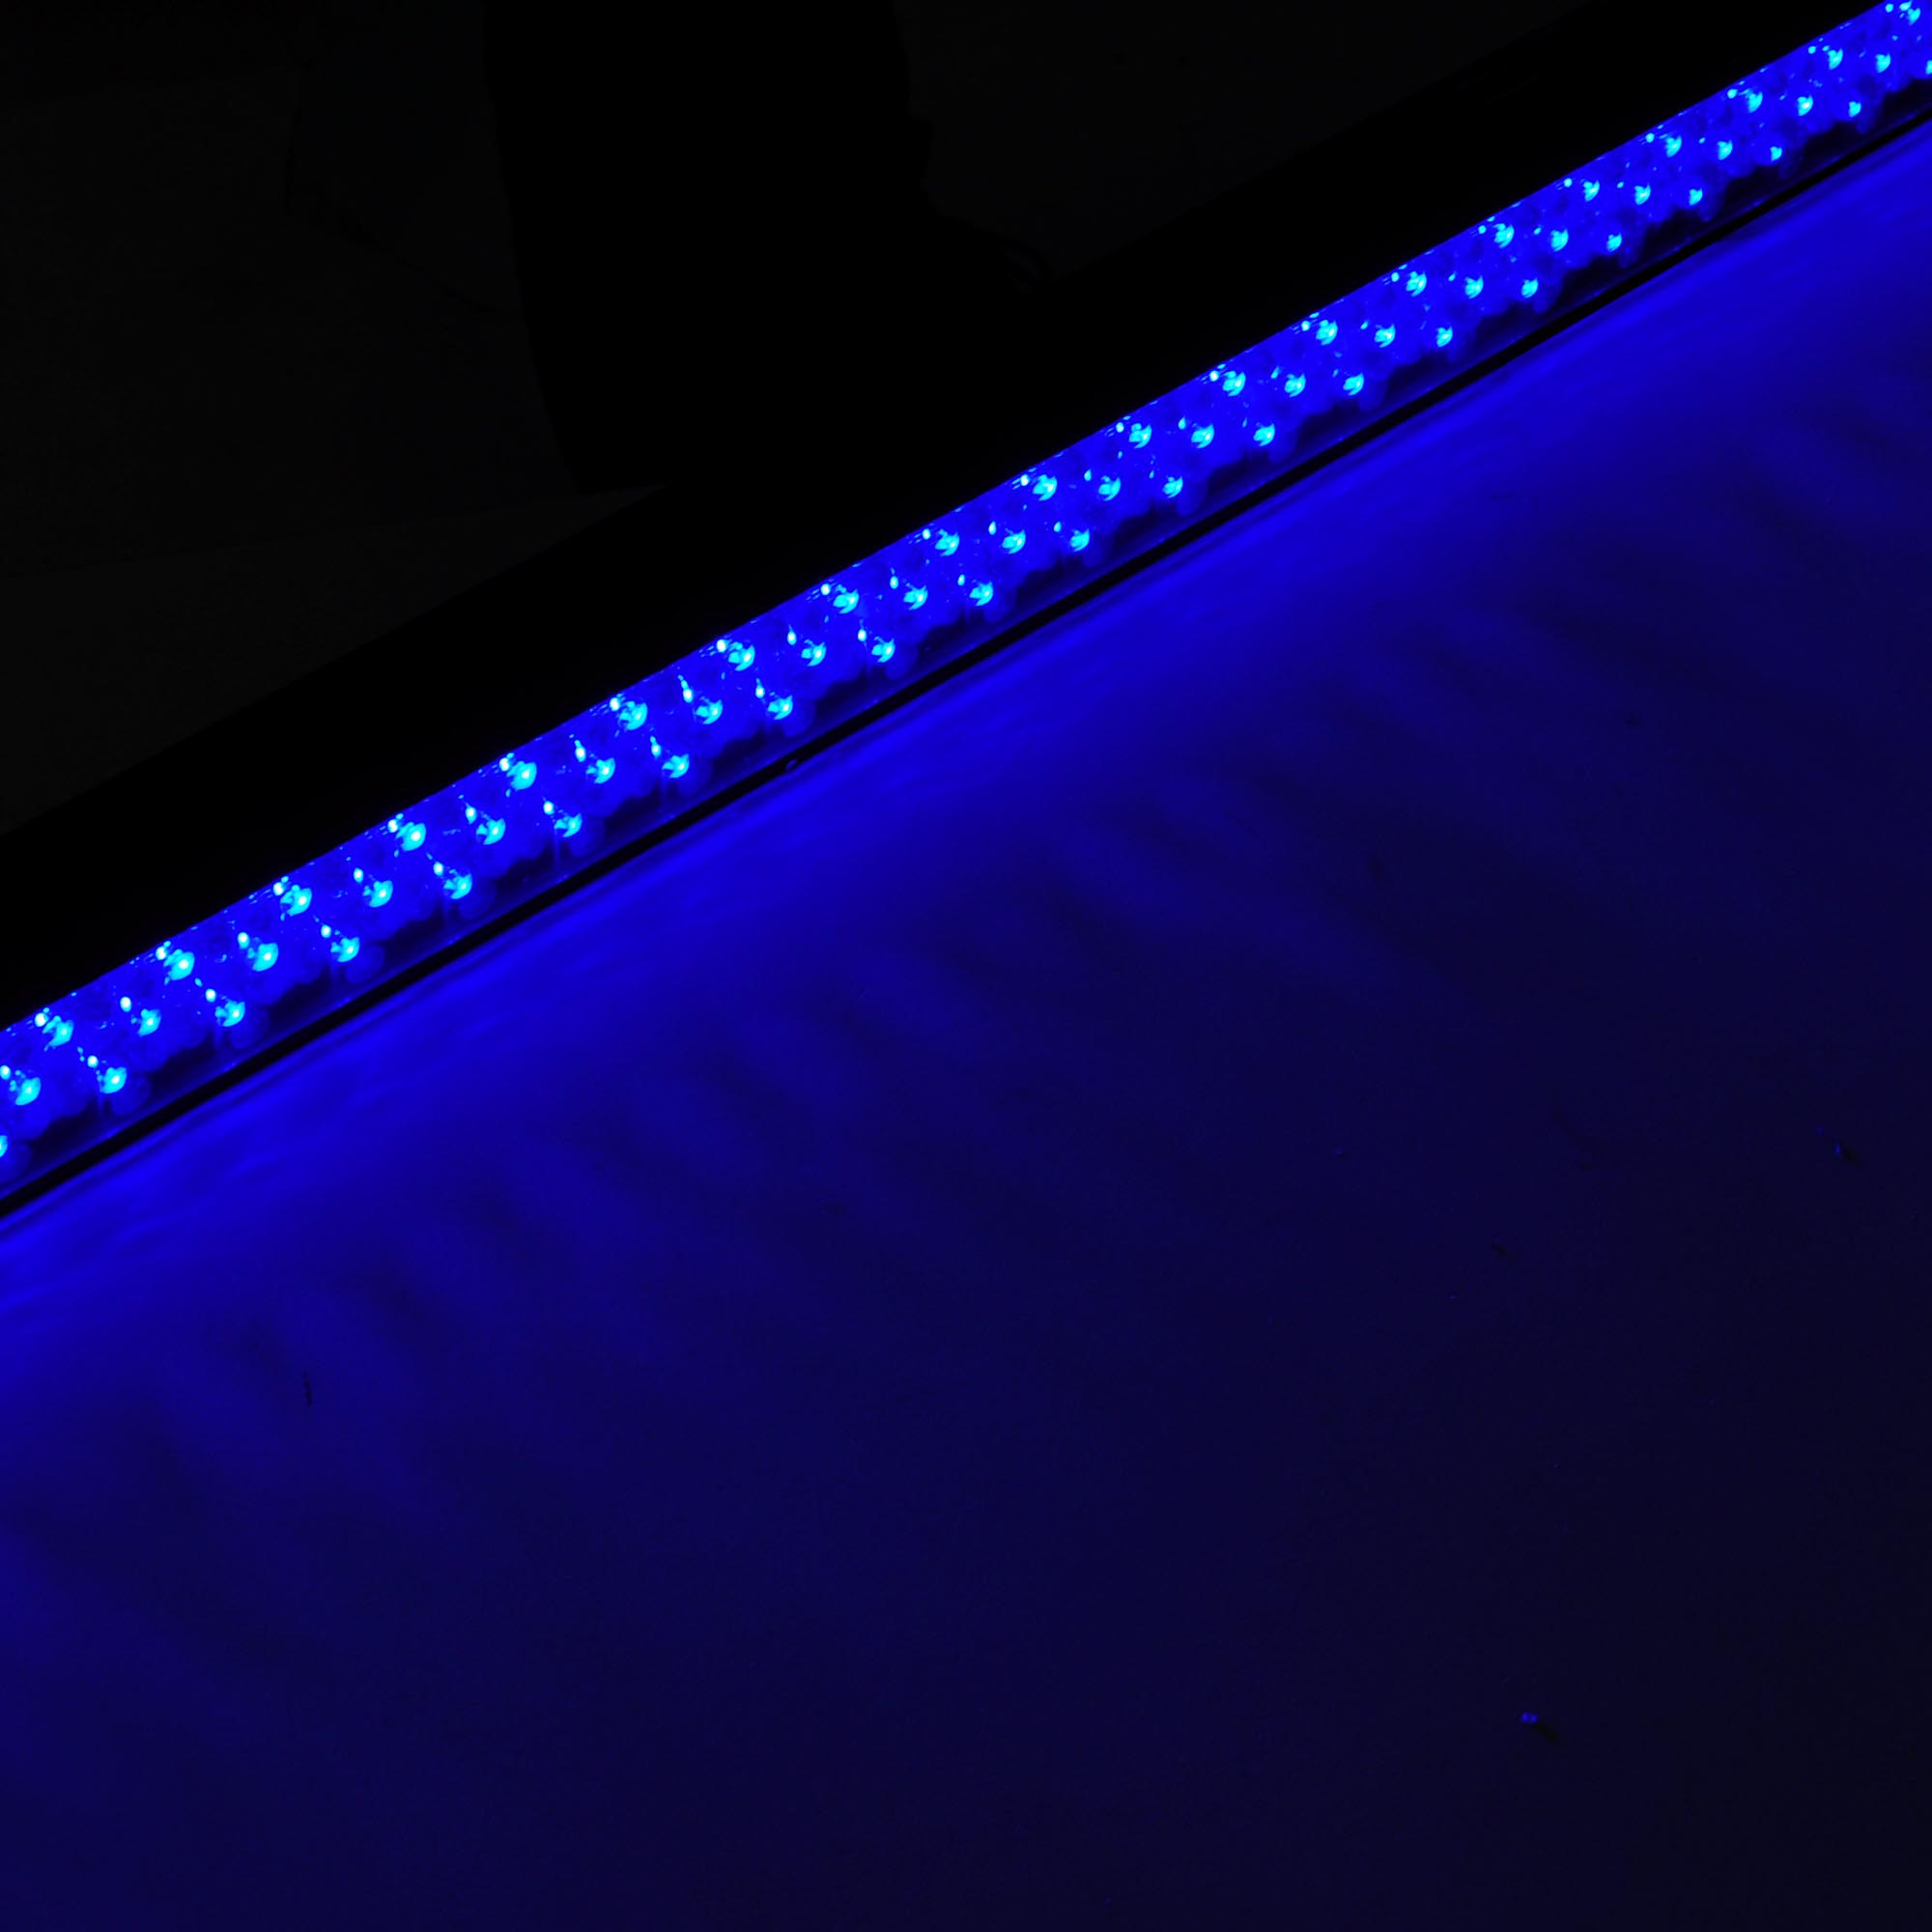 Led Wall Dj Light: 1 2 4 6pcs 252x10mm LED RGB Wall Wash Bar Light DMX512 DJ